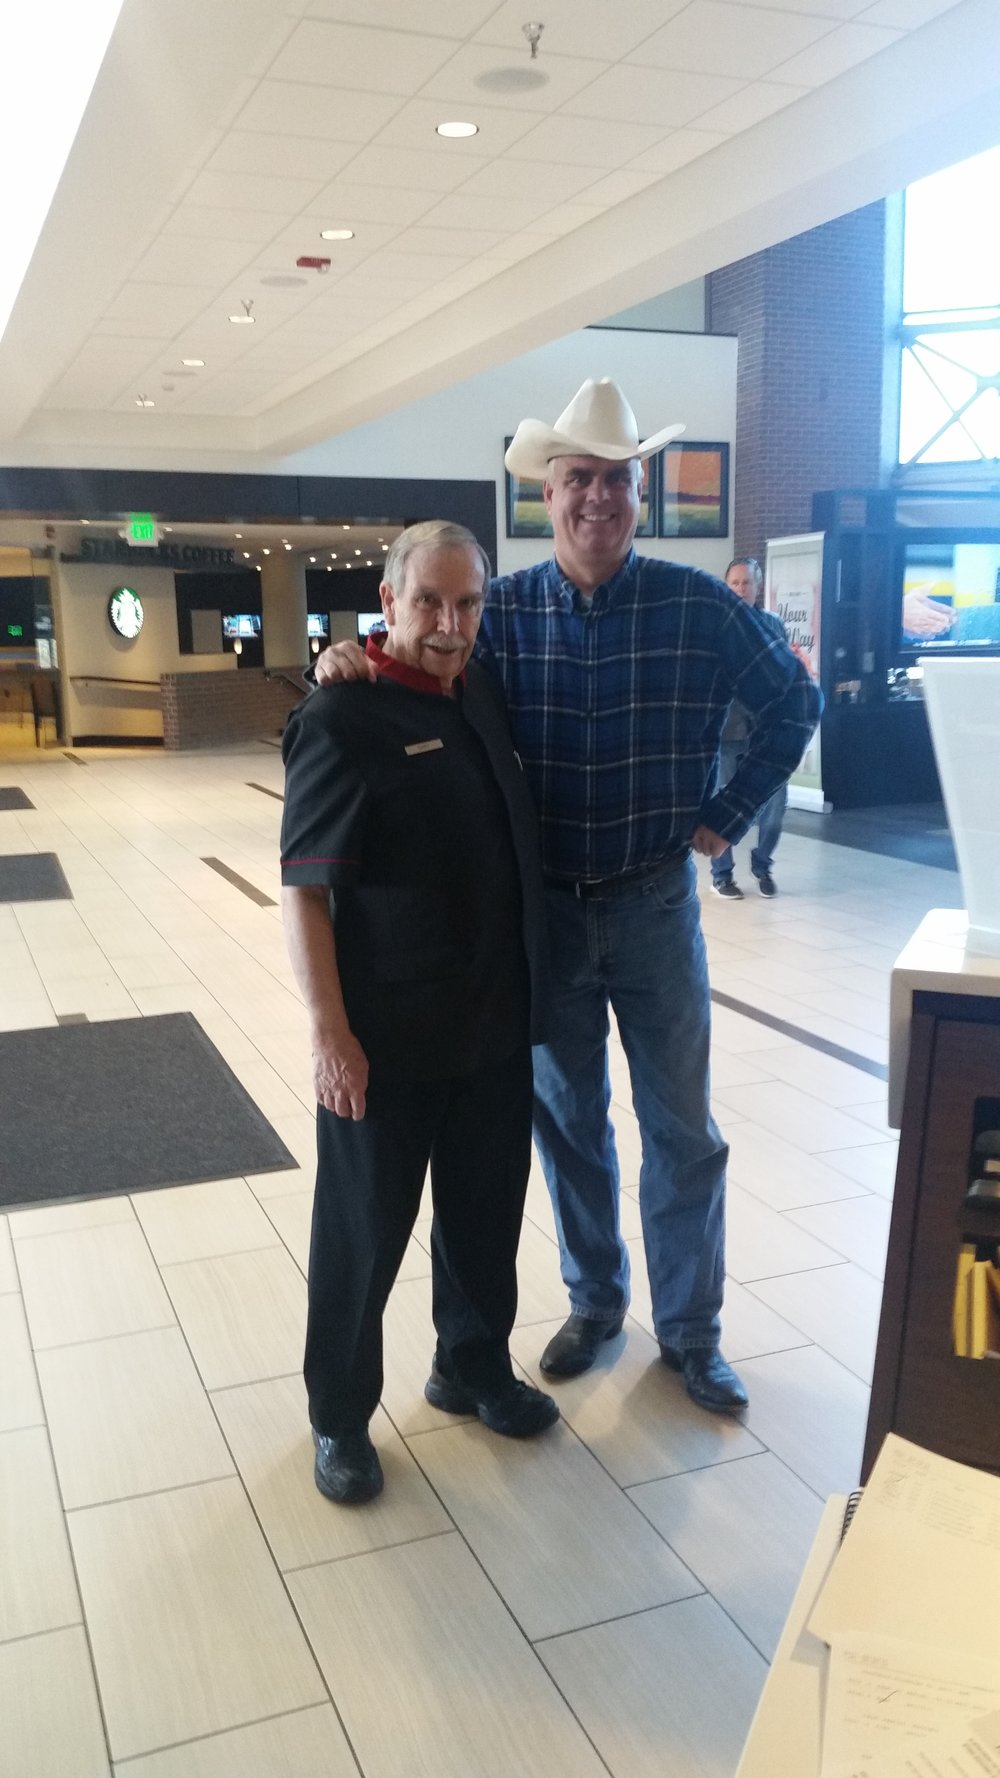 GM Steve Dennis and shuttle driver Gary posing for a picture during the down syndrome easter egg hunt.